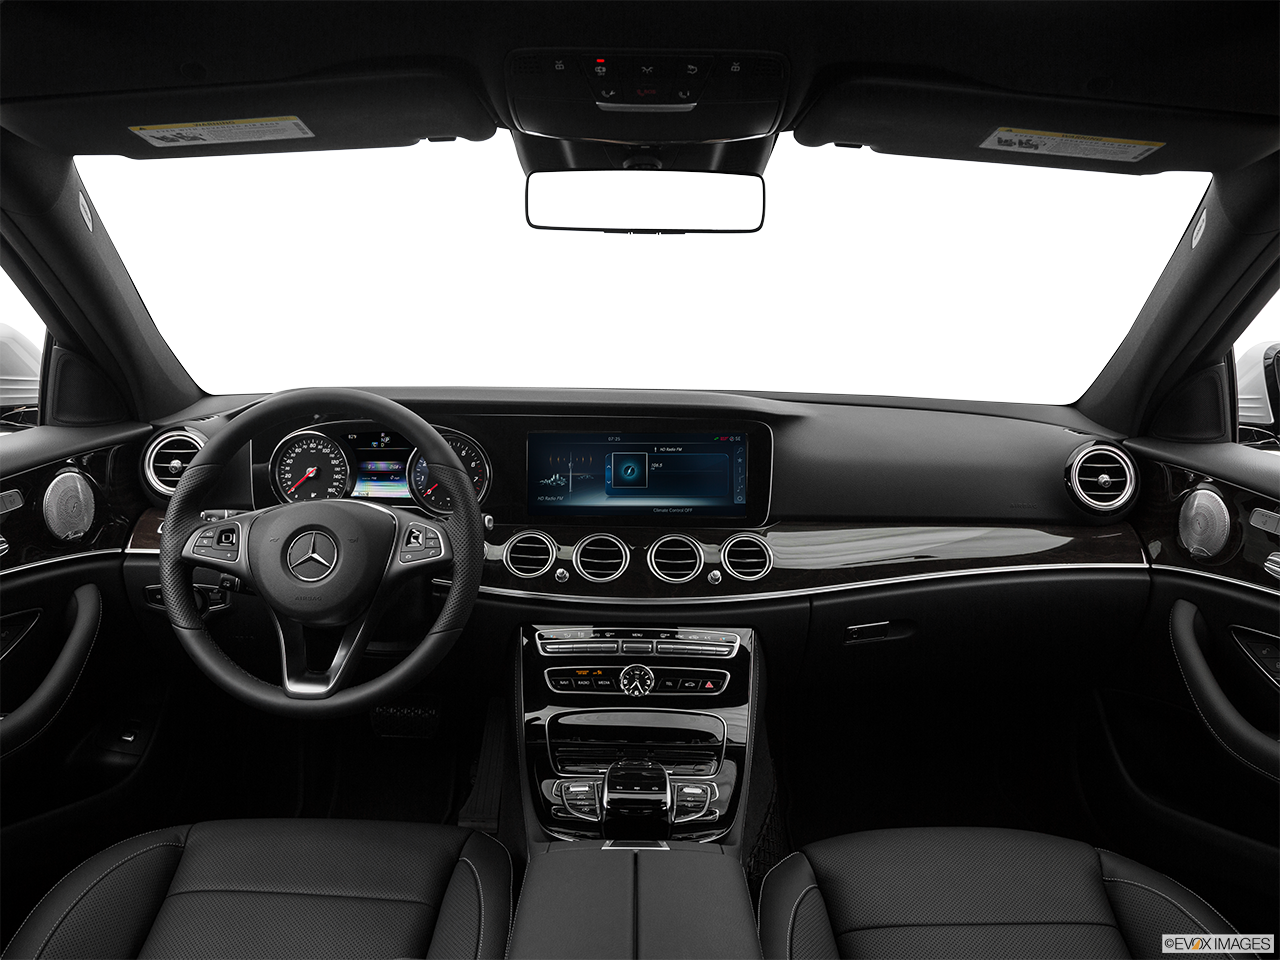 Interior View Of 2017 Mercedes-Benz E300 in Shrewsbury